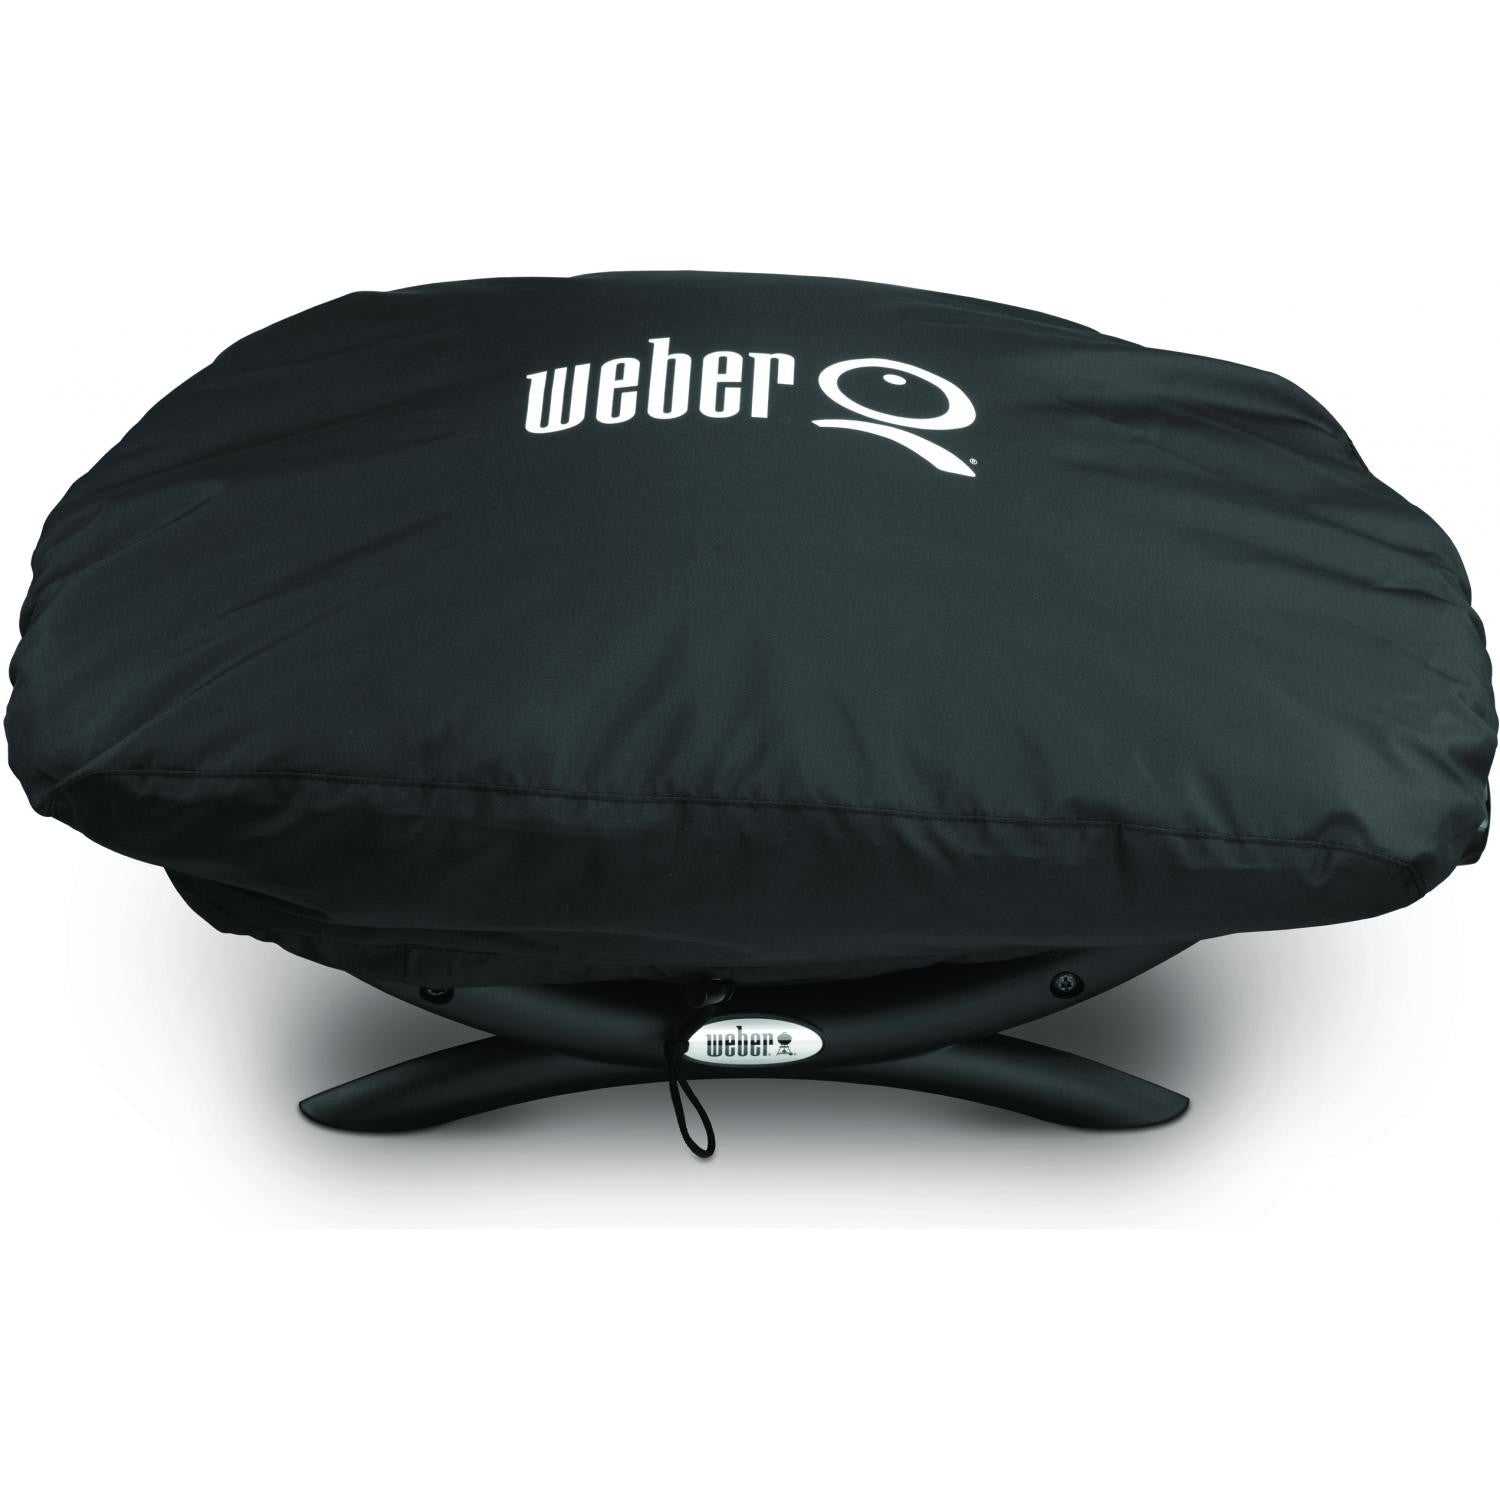 Weber 7110 Grill Cover For Q 100 & 1000 Series Gas Grills